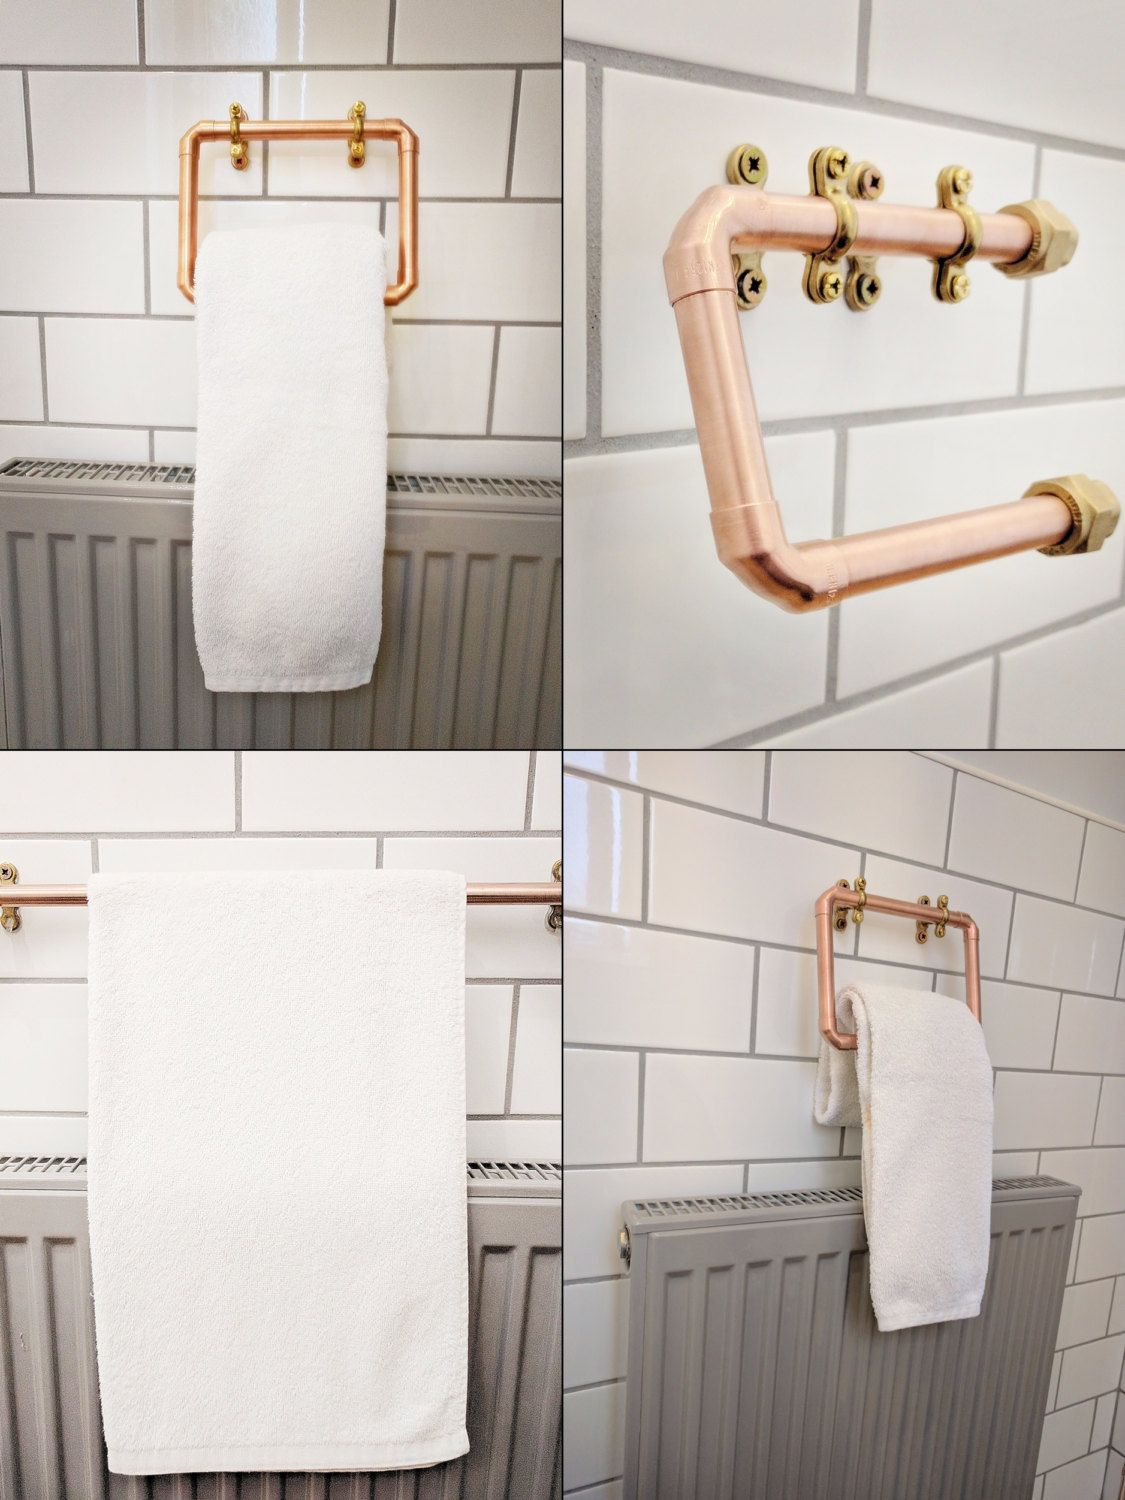 Toilet Accessories Copper Bathroom Accessory Set Creative Copper Bathroom